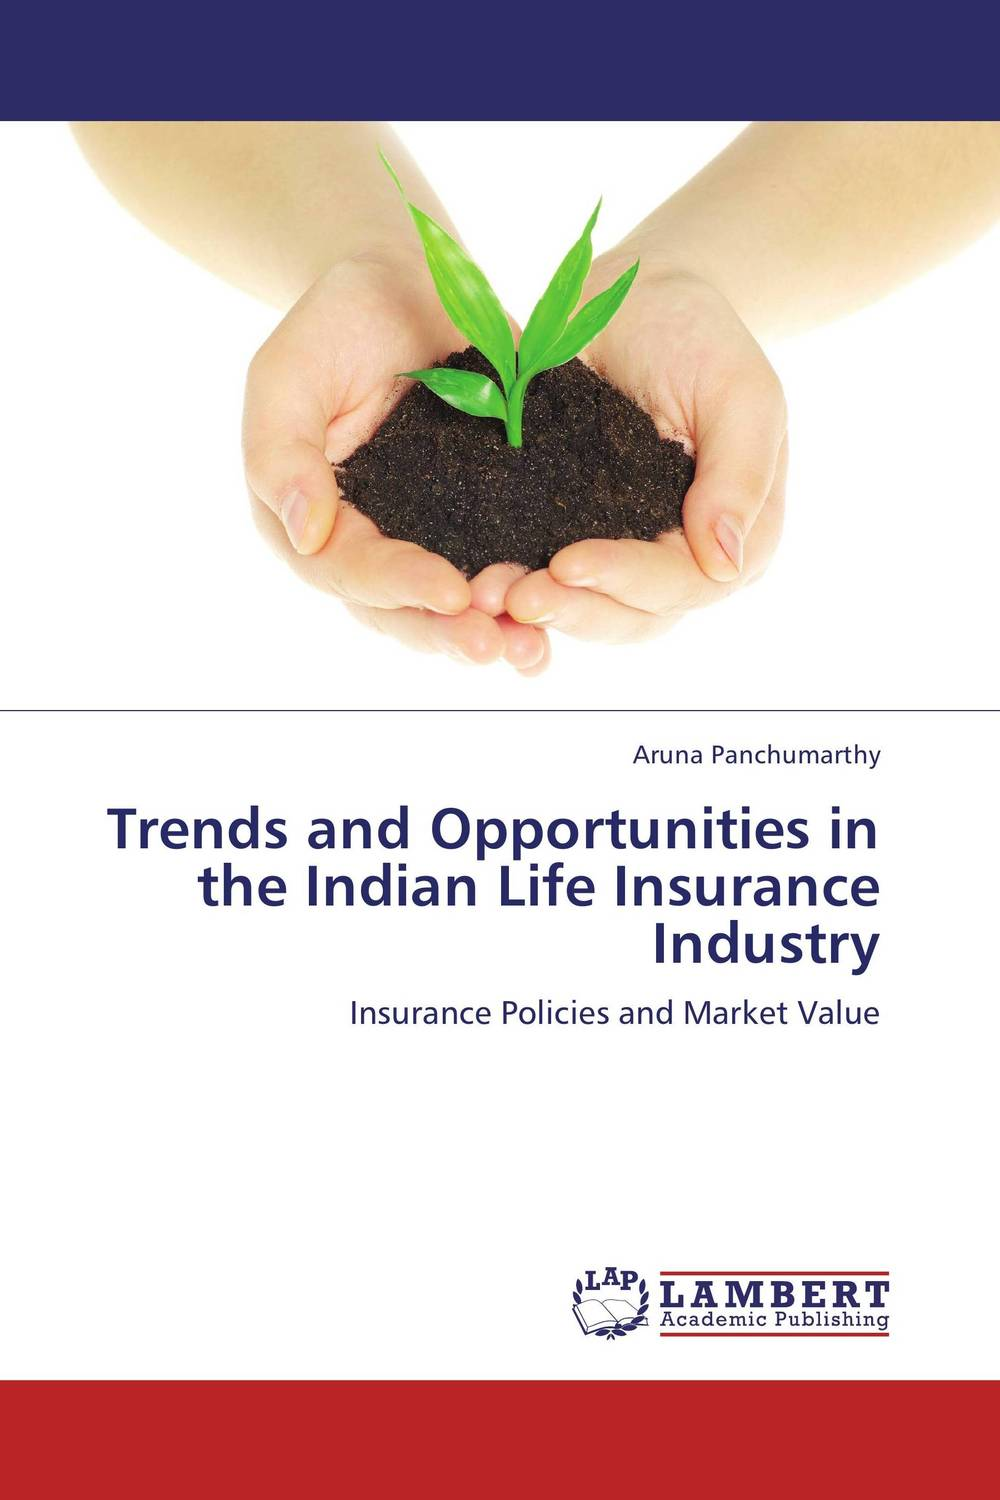 Trends and Opportunities in the Indian Life Insurance Industry marco gantenbein swiss annuities and life insurance secure returns asset protection and privacy